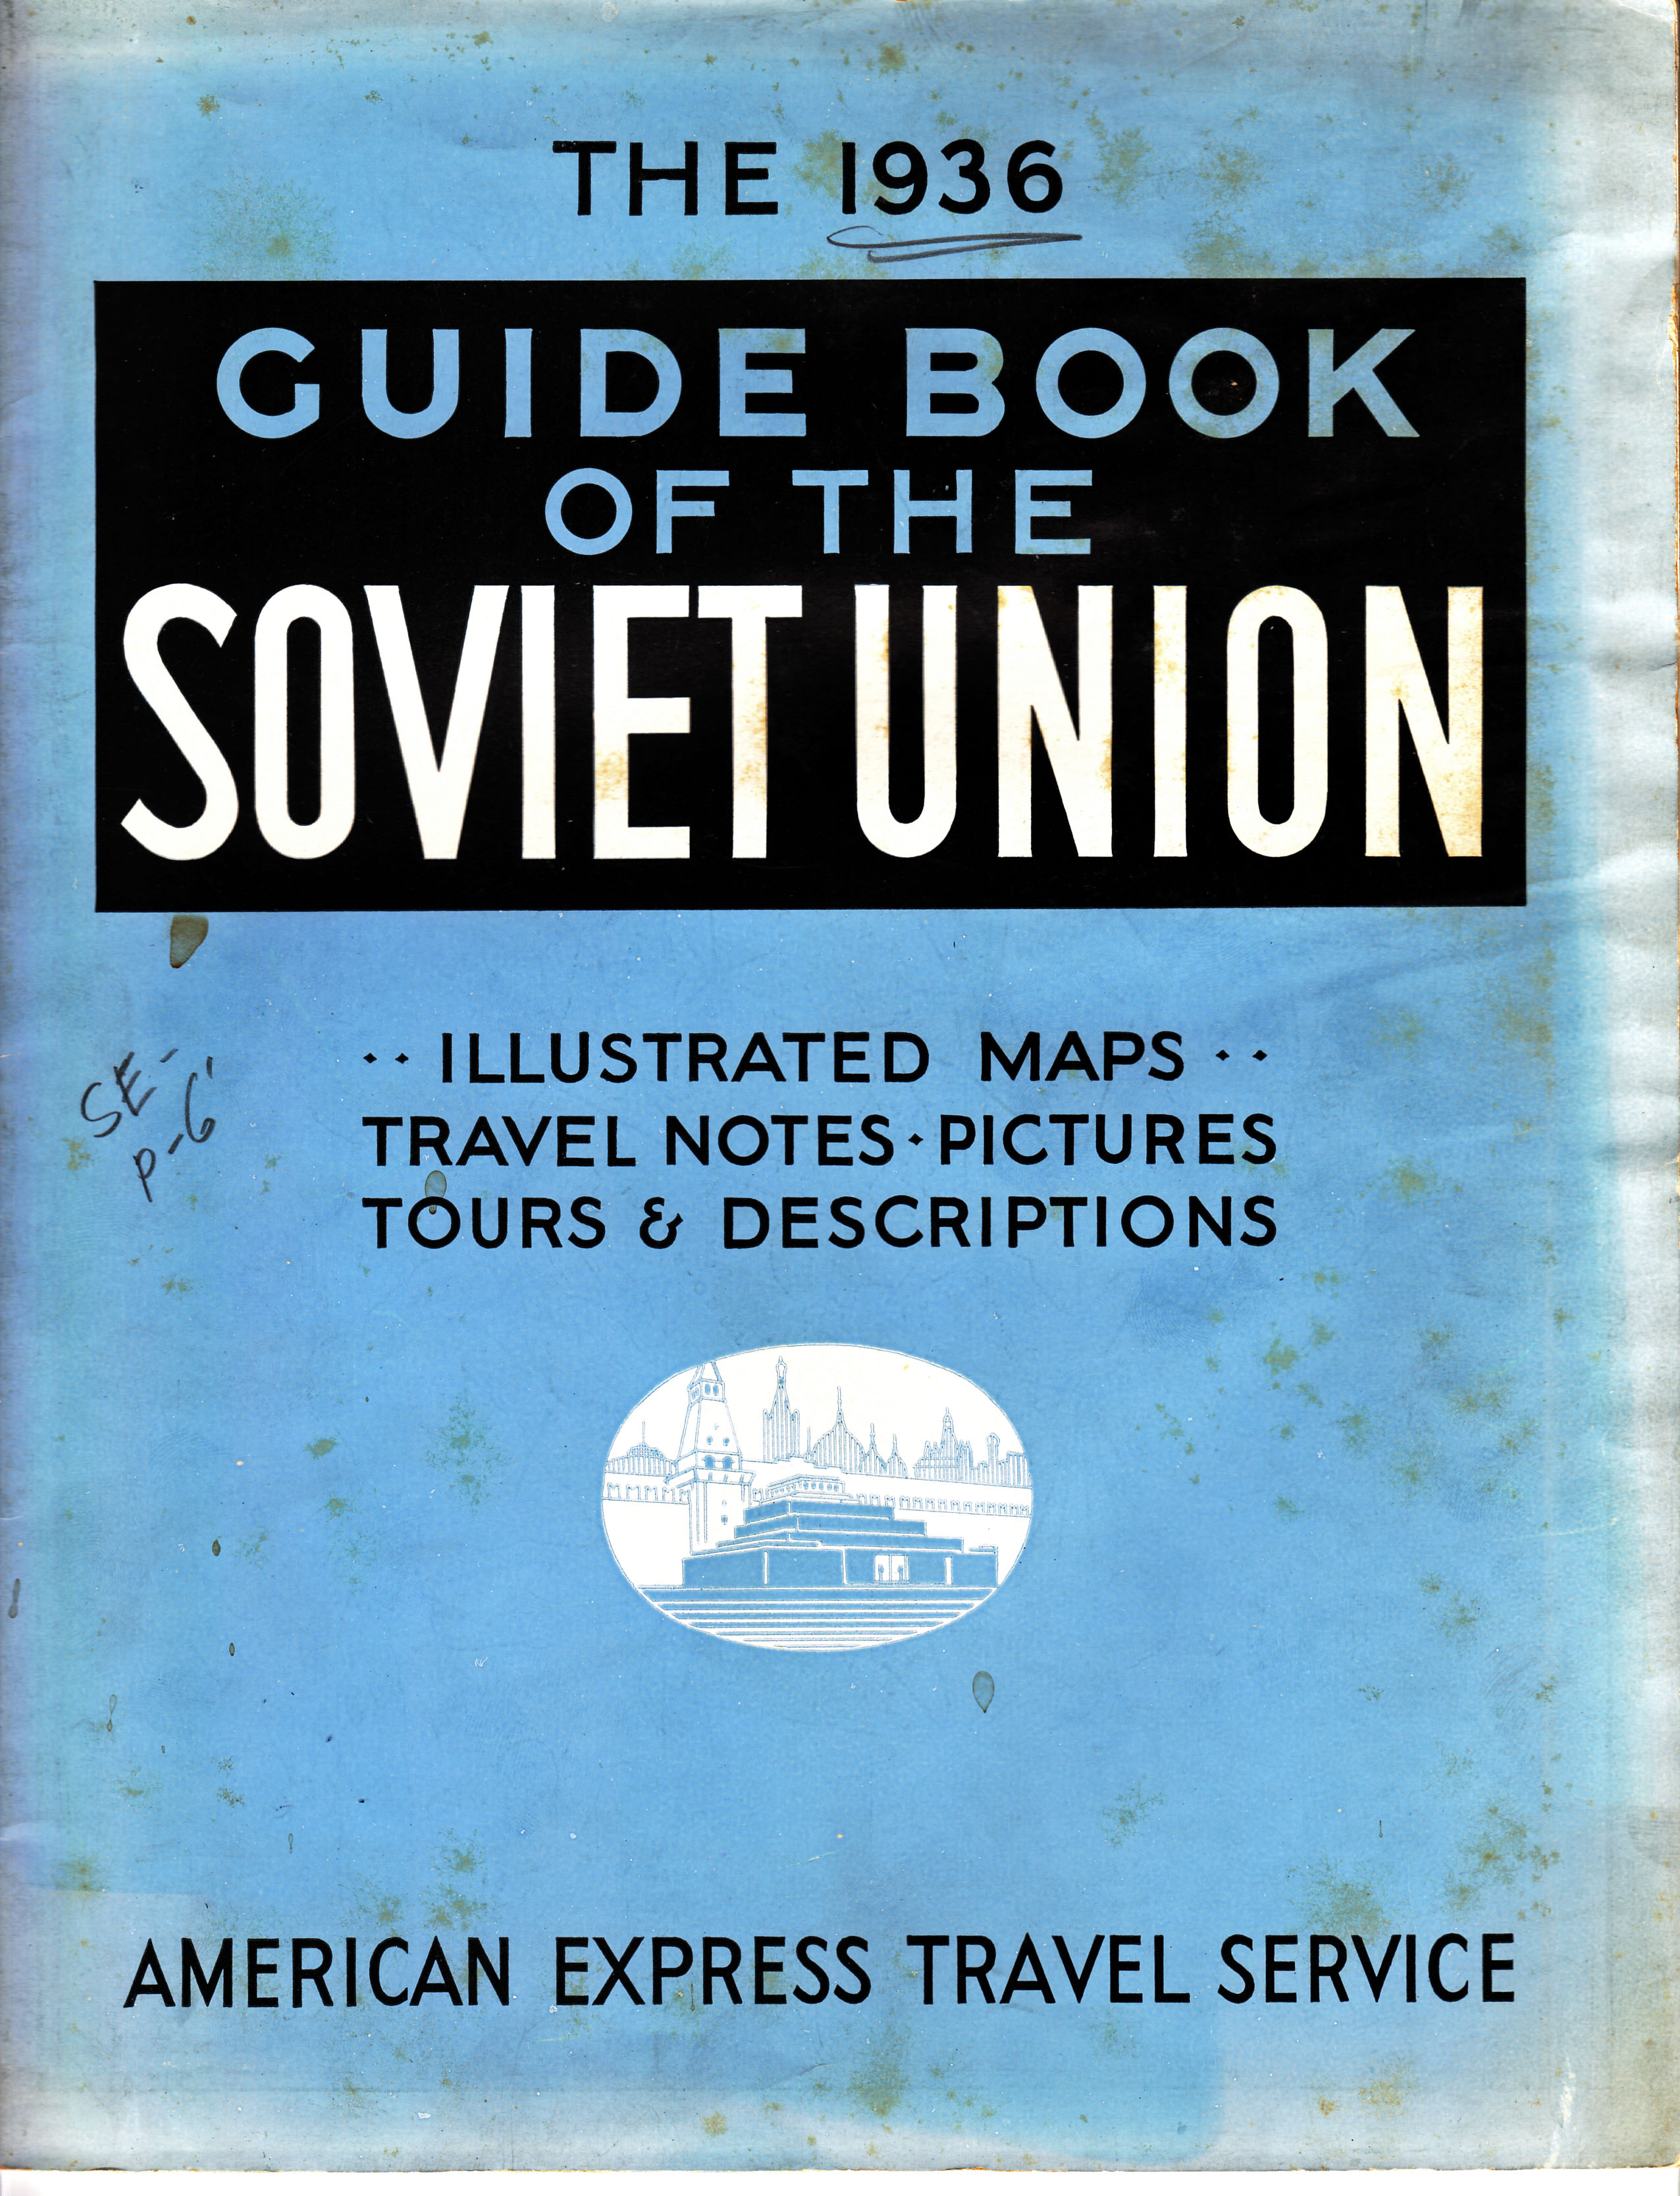 The strangest popular movements in the USSR